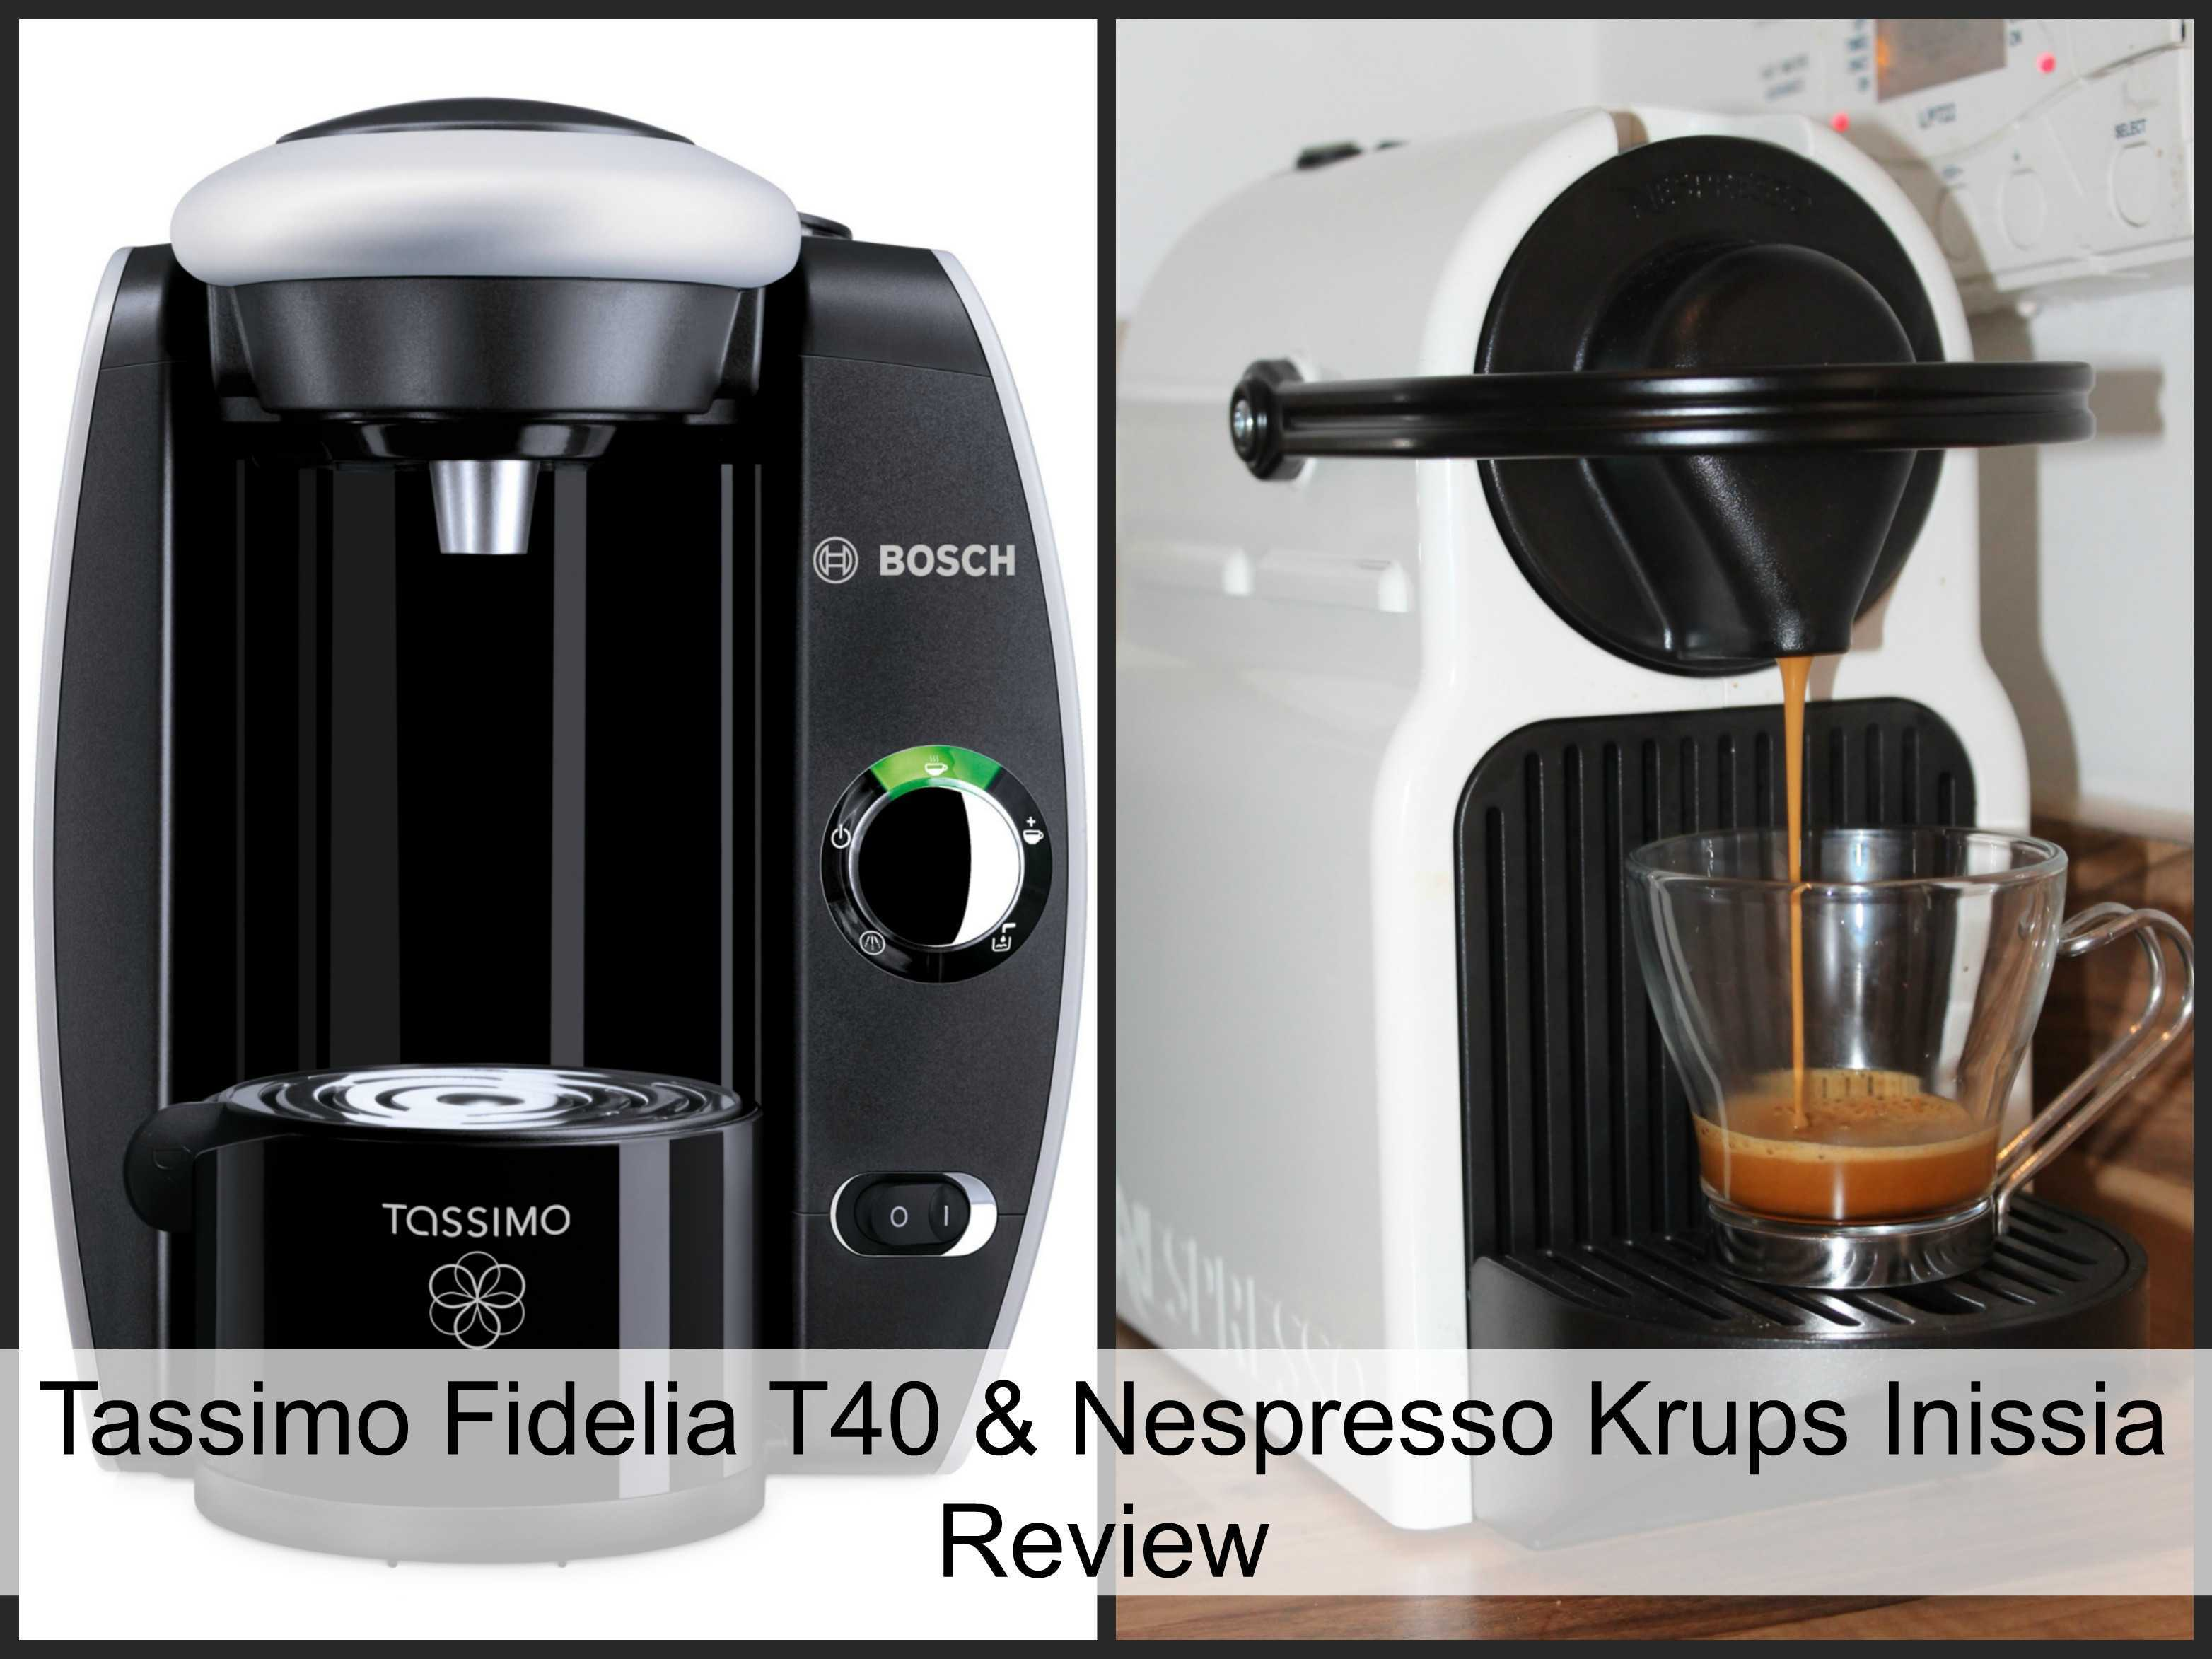 Krups Coffee Maker Reviews Ratings : Tassimo Fidelia T40 & Nespresso Krups Inissia Coffee Machine Review - My Life, My Passion